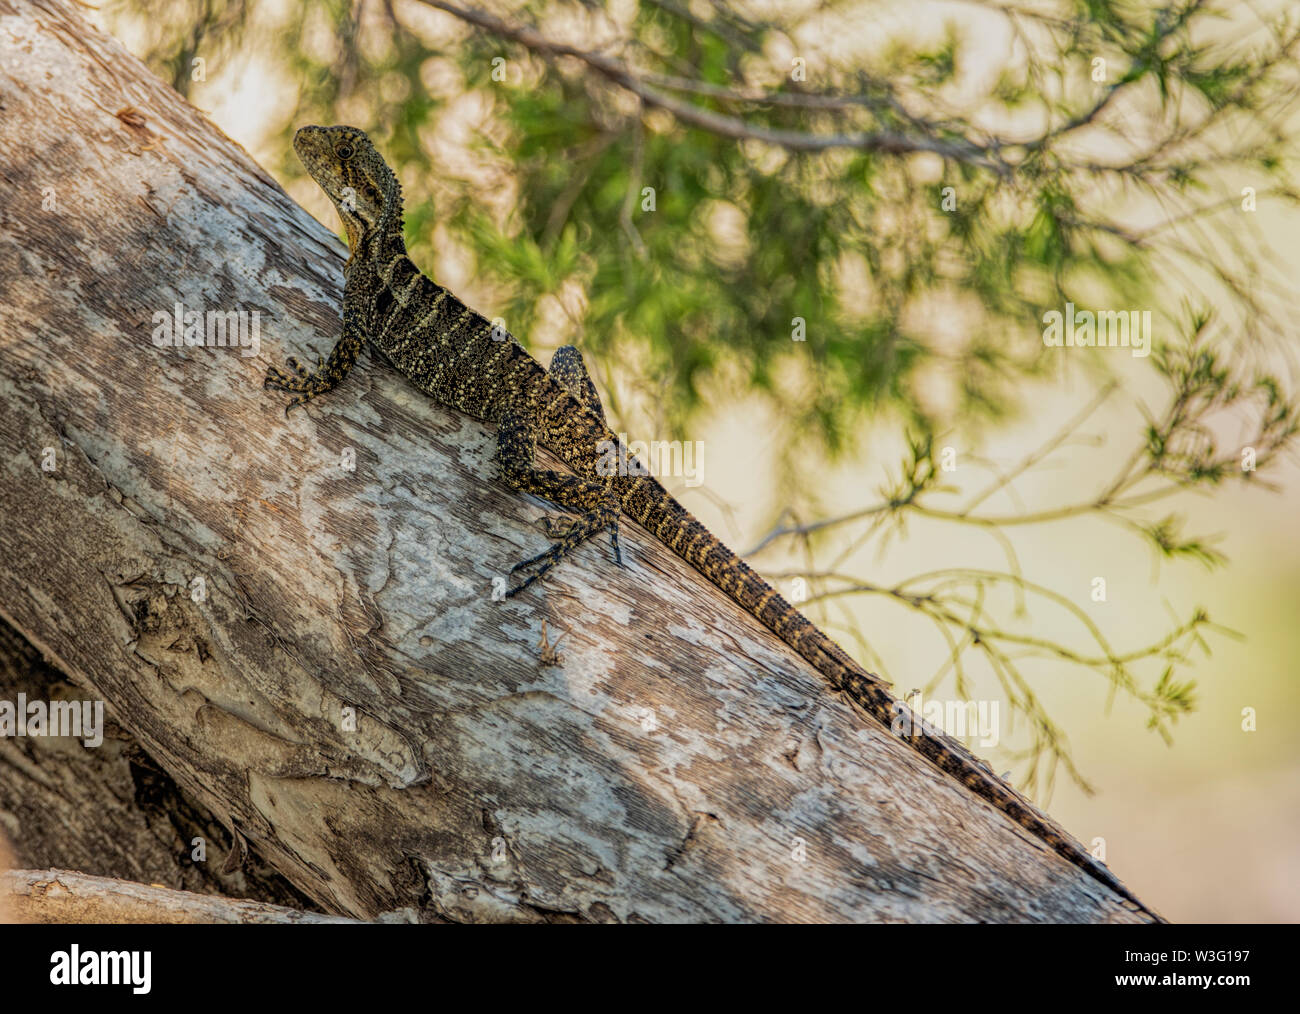 Young Eastern Water Dragon resting on a log on the banks of the Balonne River in Queensland, Australia - Stock Image